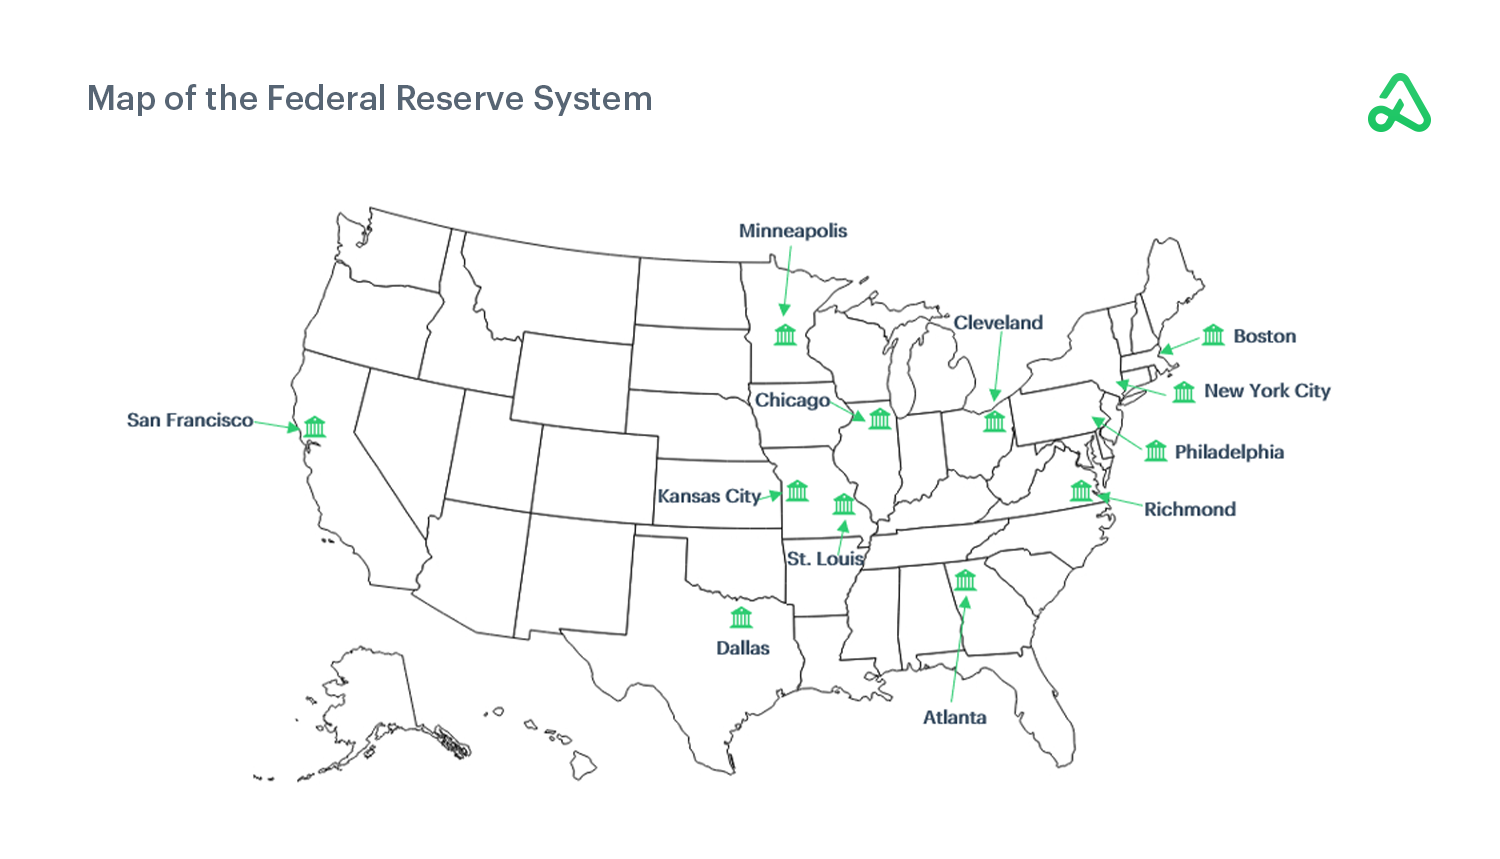 Map of the federal reserve system